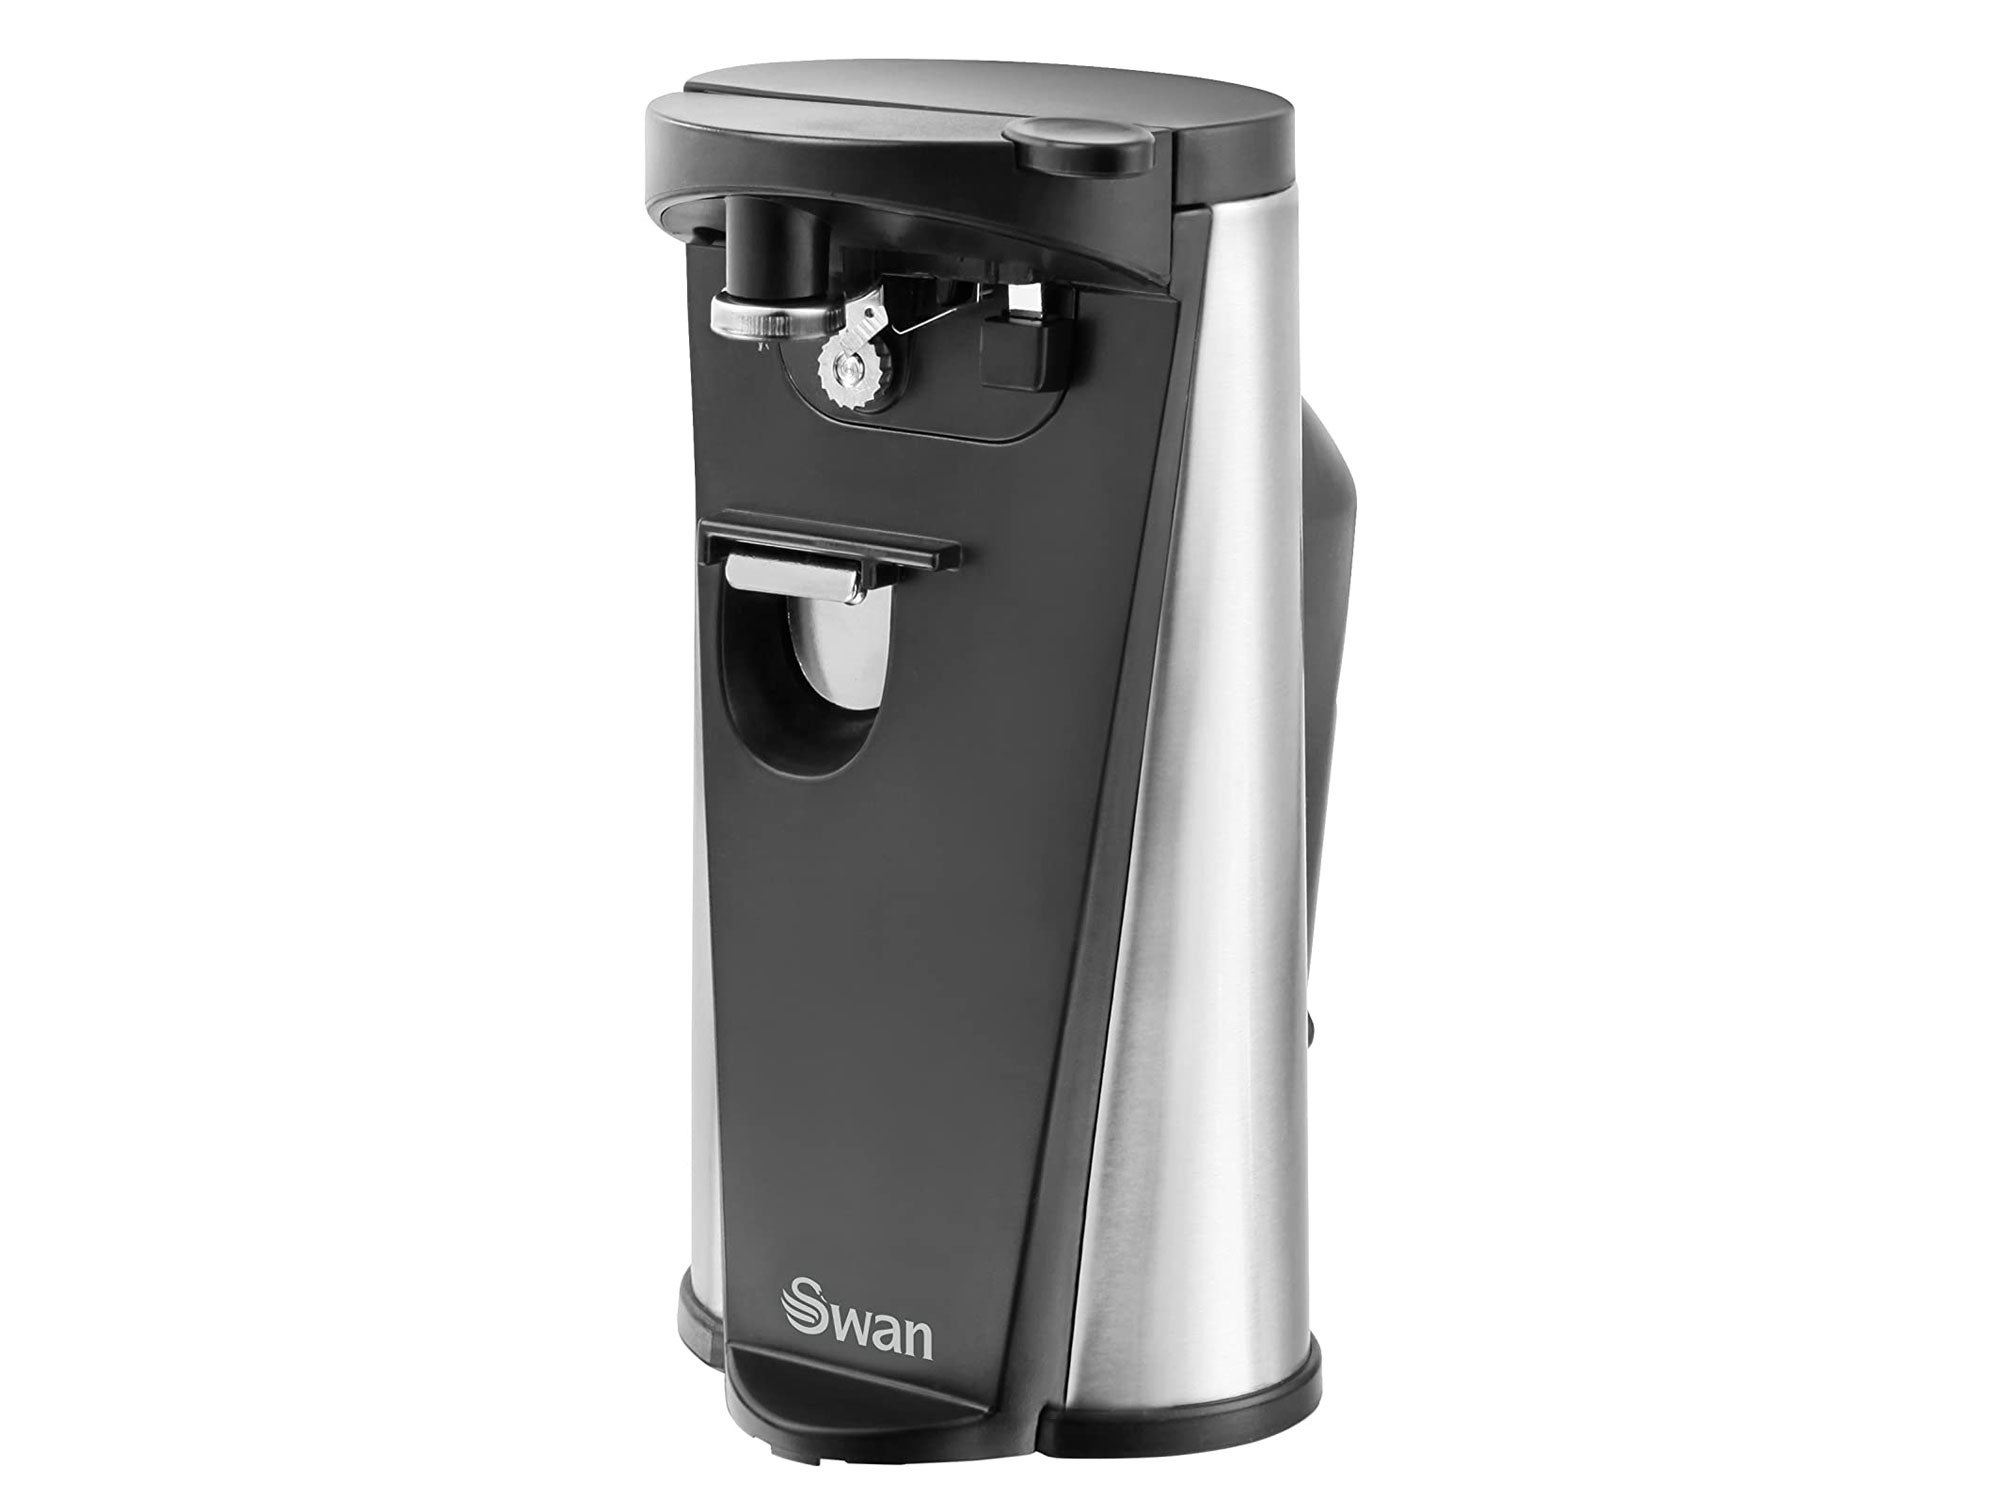 Swan 3-in-1 Hands Free Can Tin, Including Knife Sharpener and Bottle Opener, stainless steel, 60 W, Black